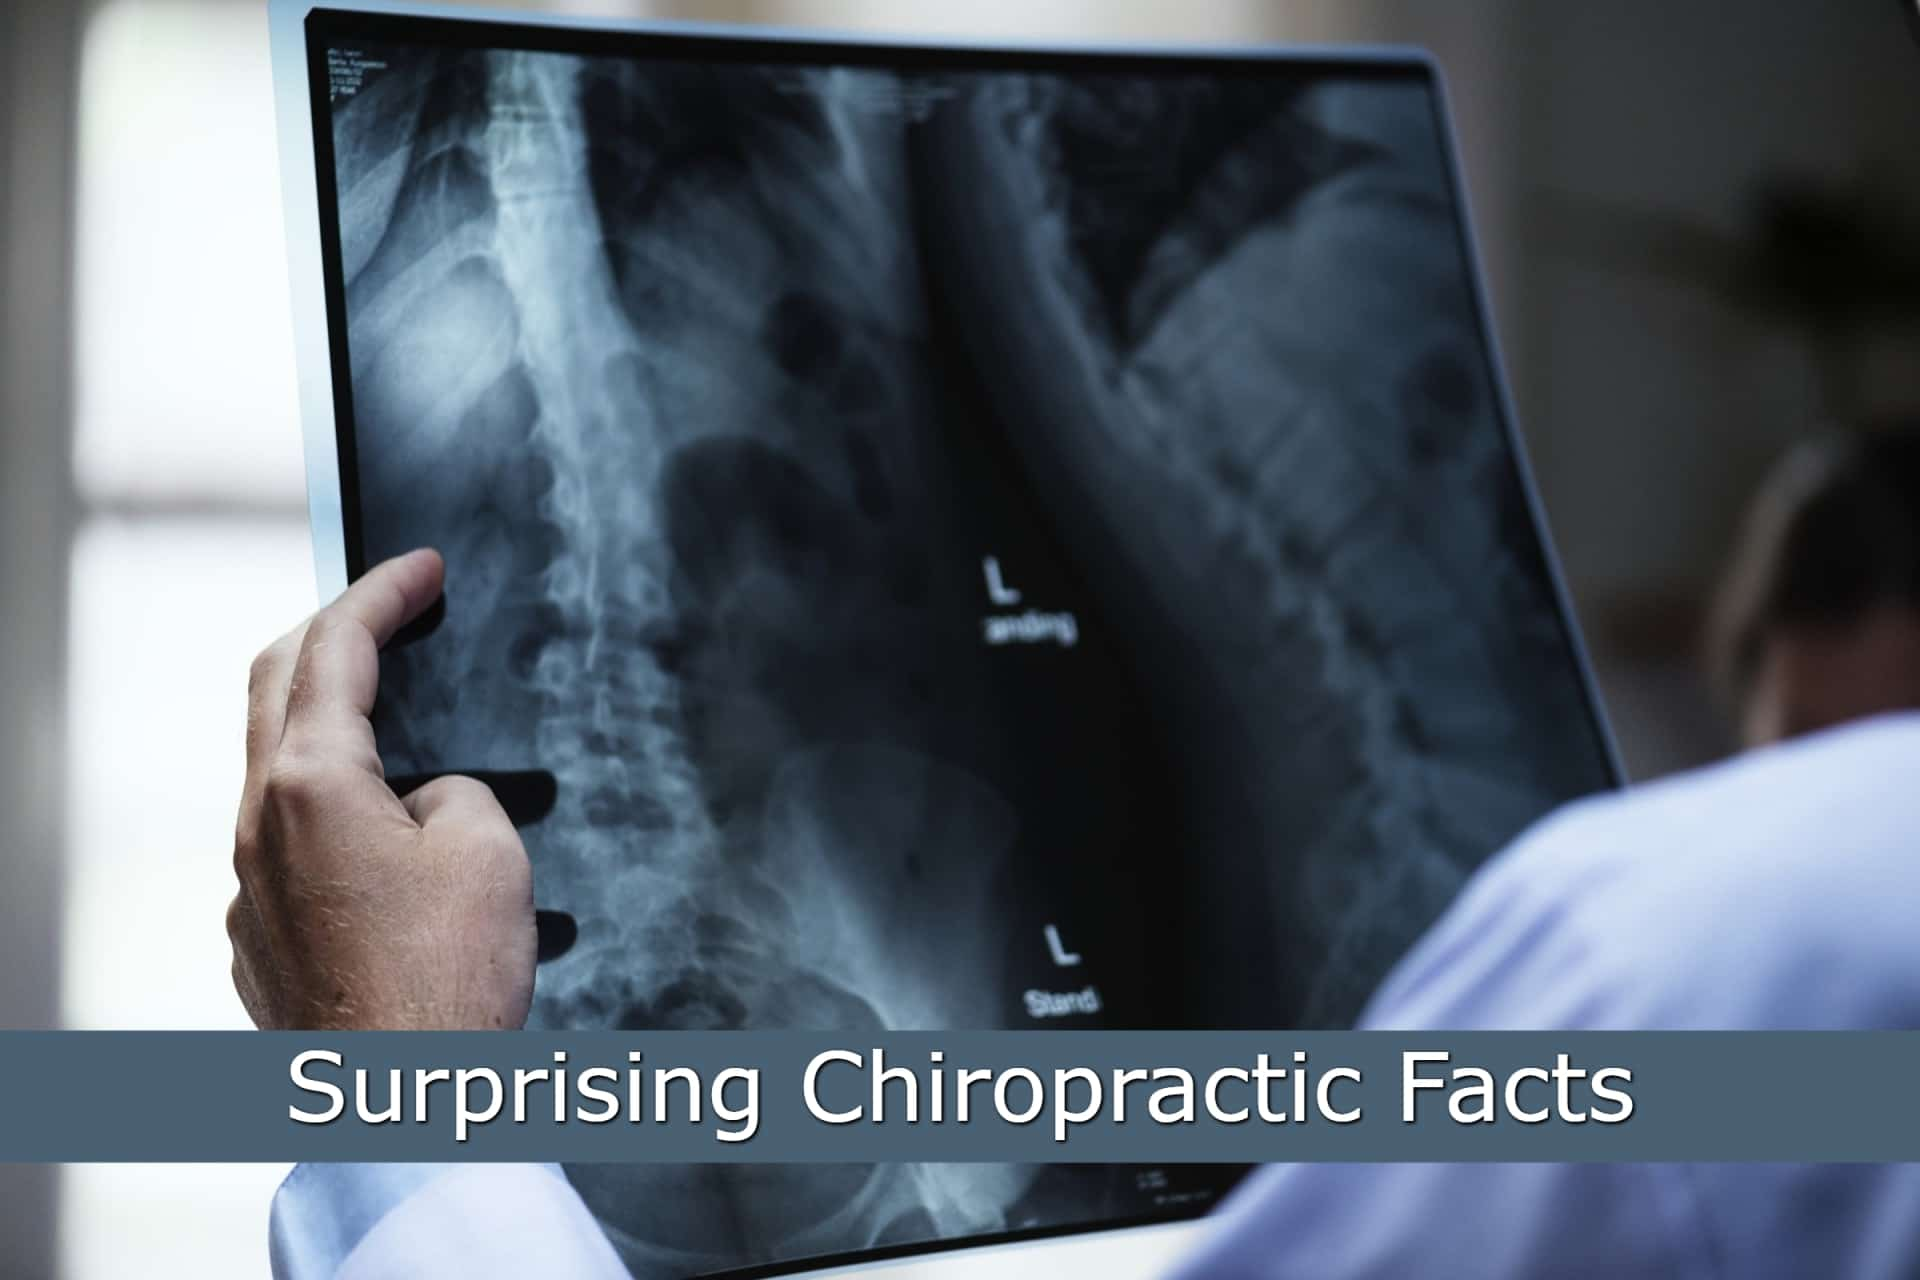 Surprising Chiropractic Facts